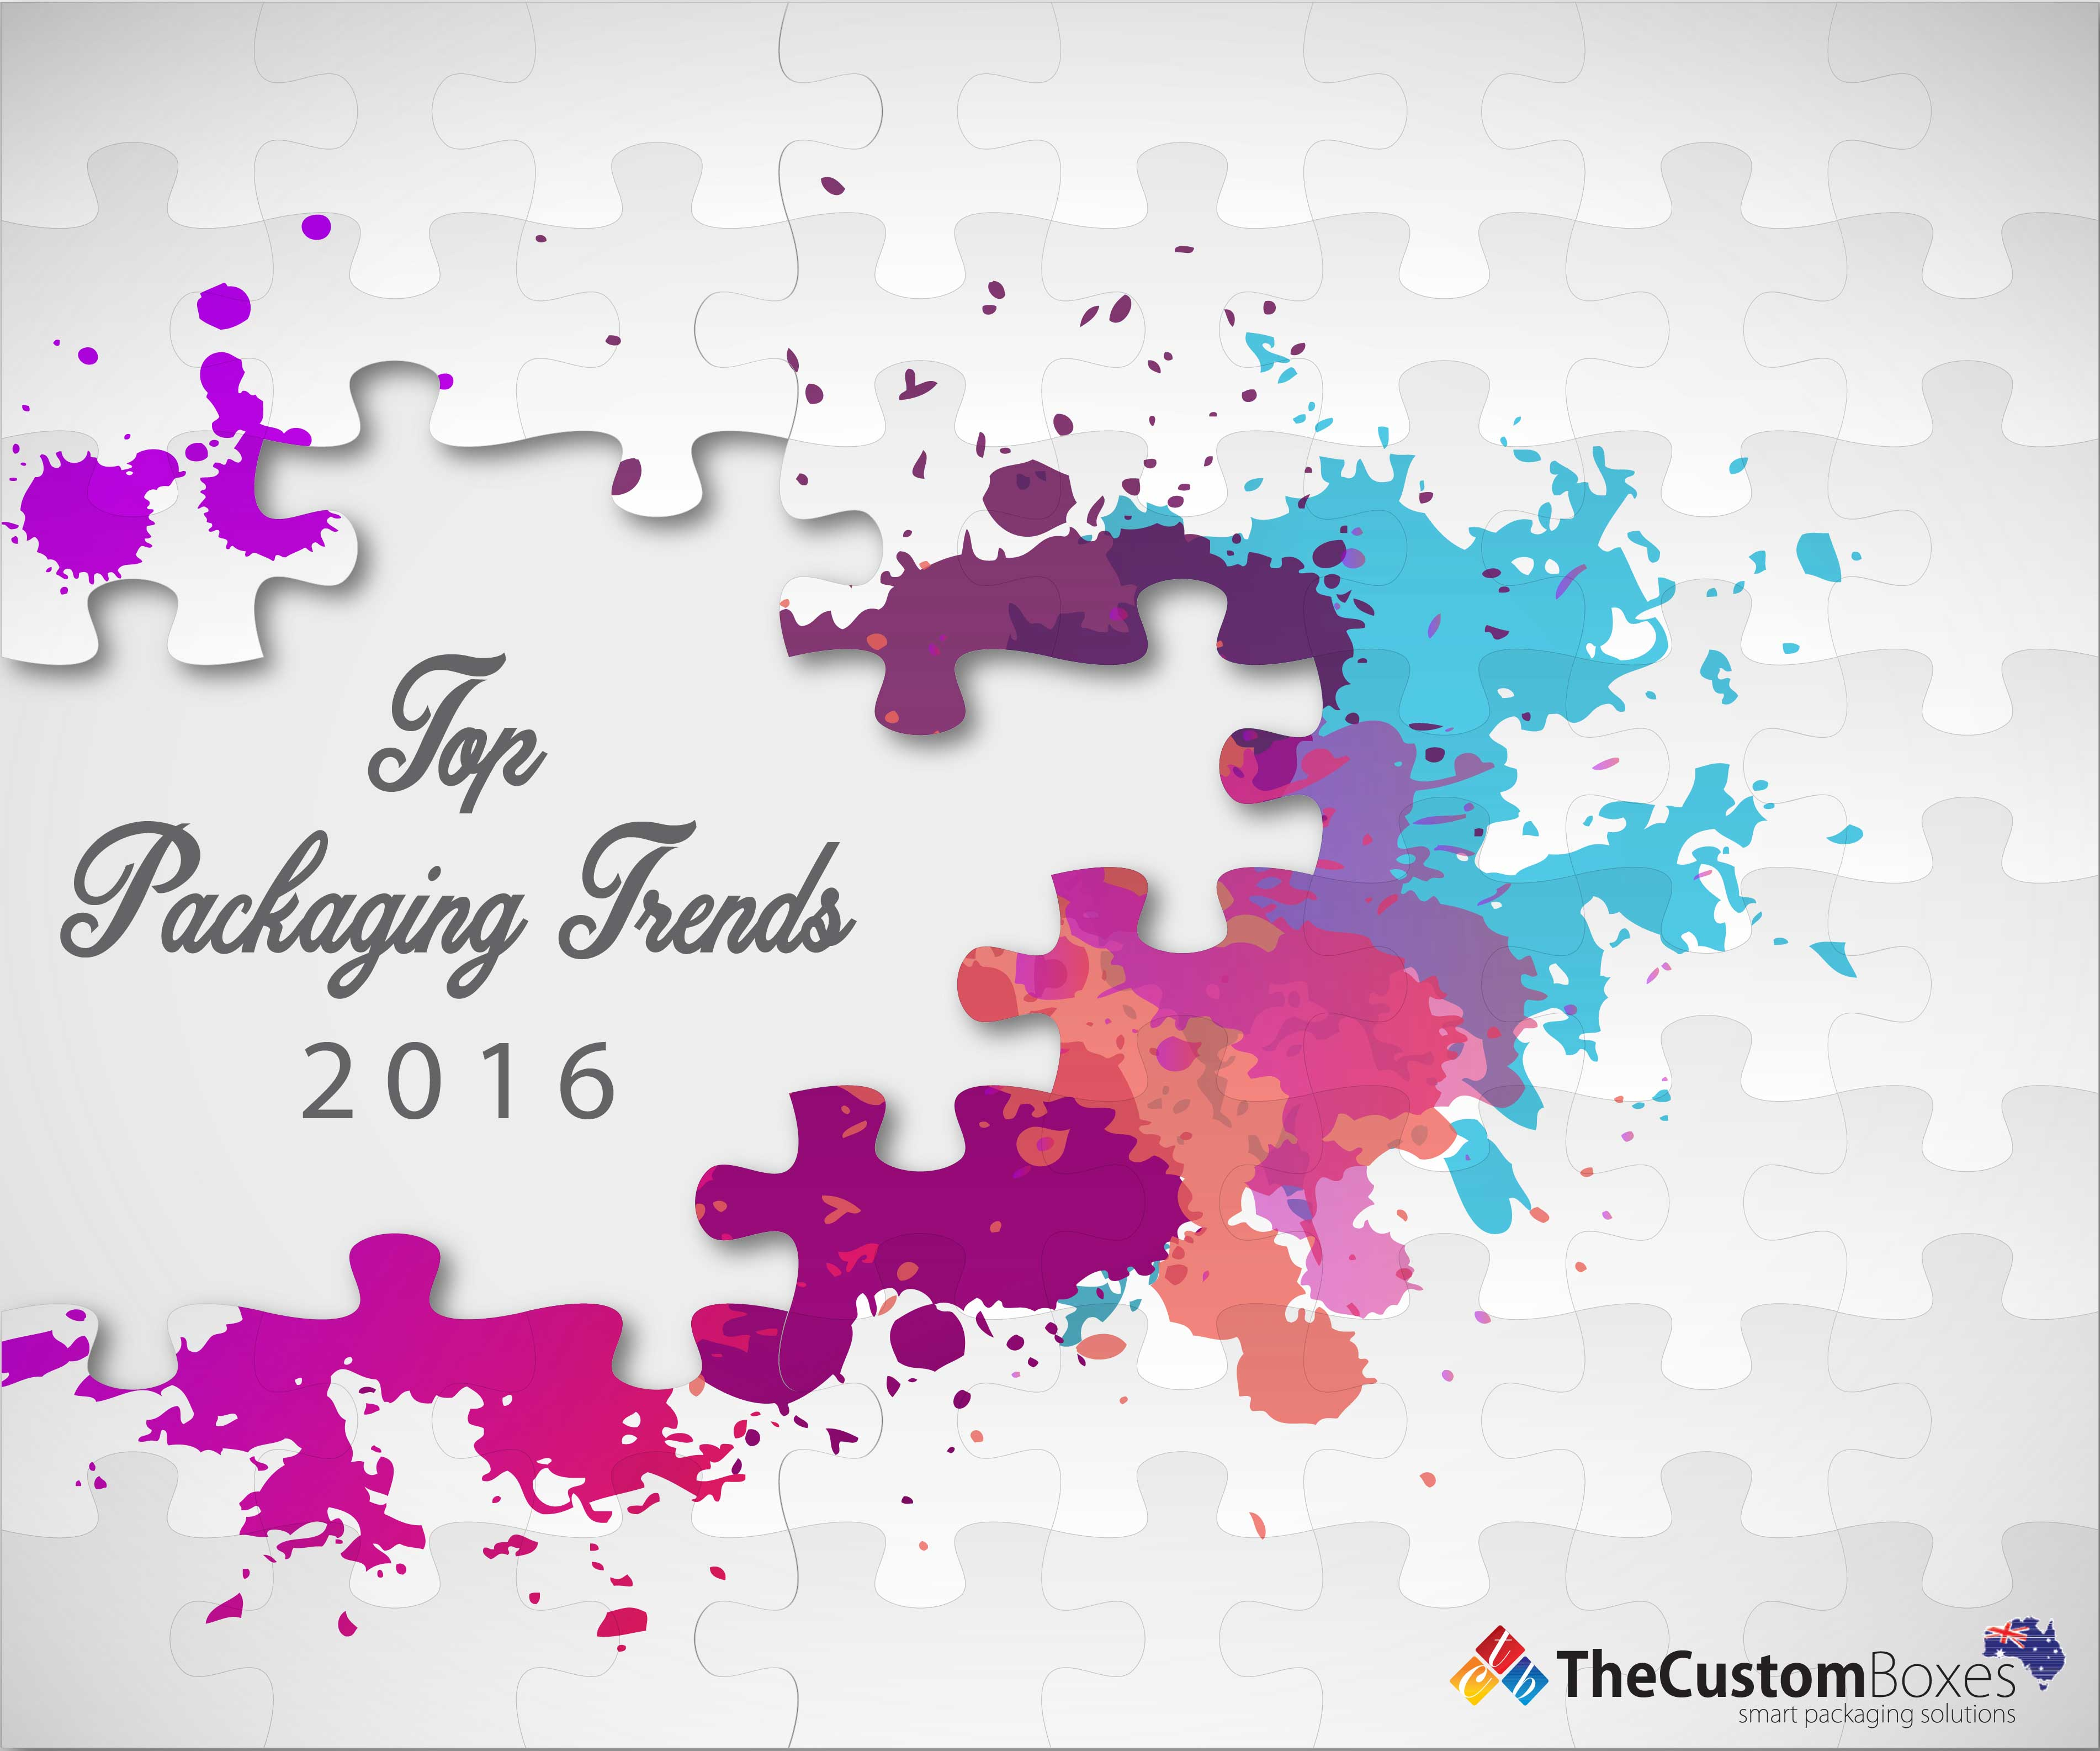 Top Packaging Trends In 2016